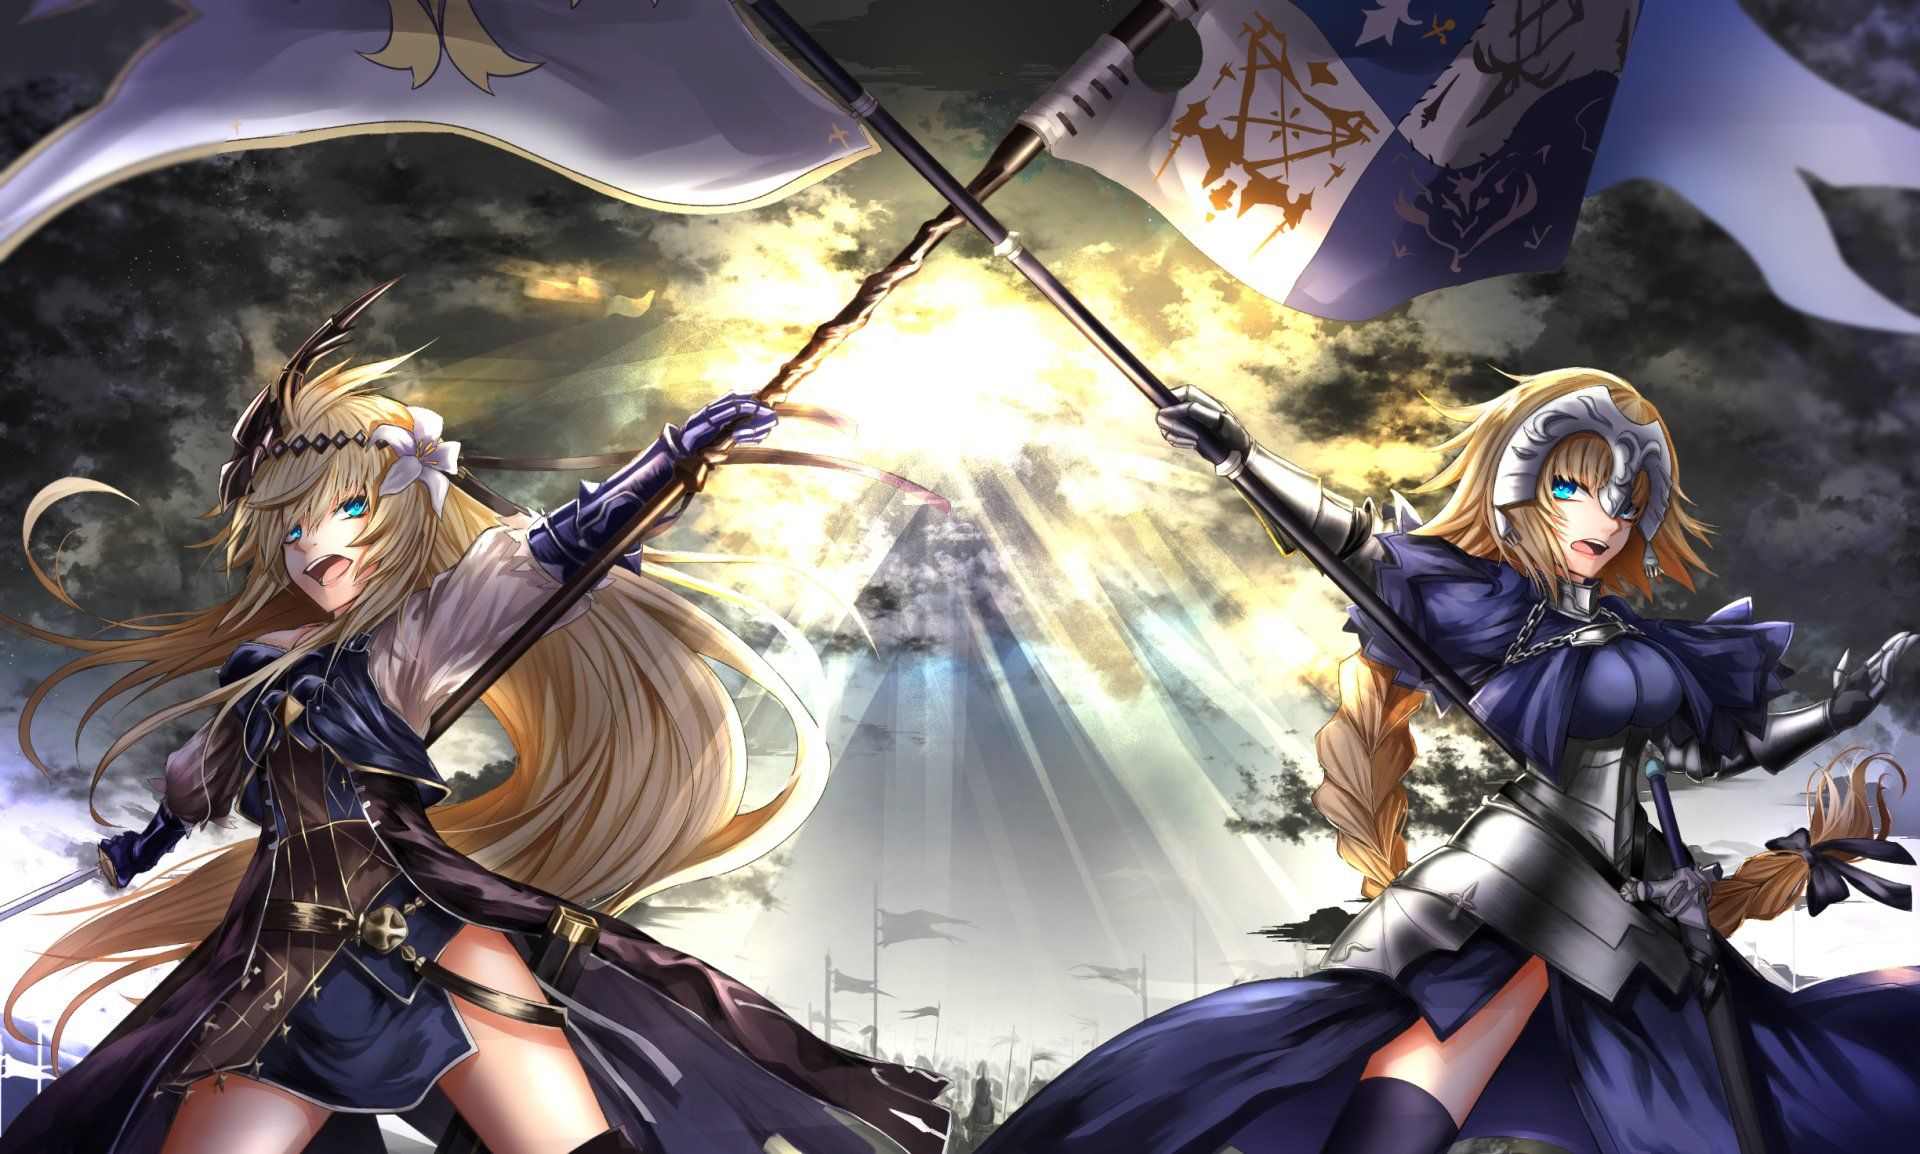 Anime Crossover Fate Apocrypha Granblue Fantasy Jeanne D Arc Jeanne D Arc Granblue Fantasy Ruler Fate Apocrypha Wallpap Anime Anime Crossover Anime Images